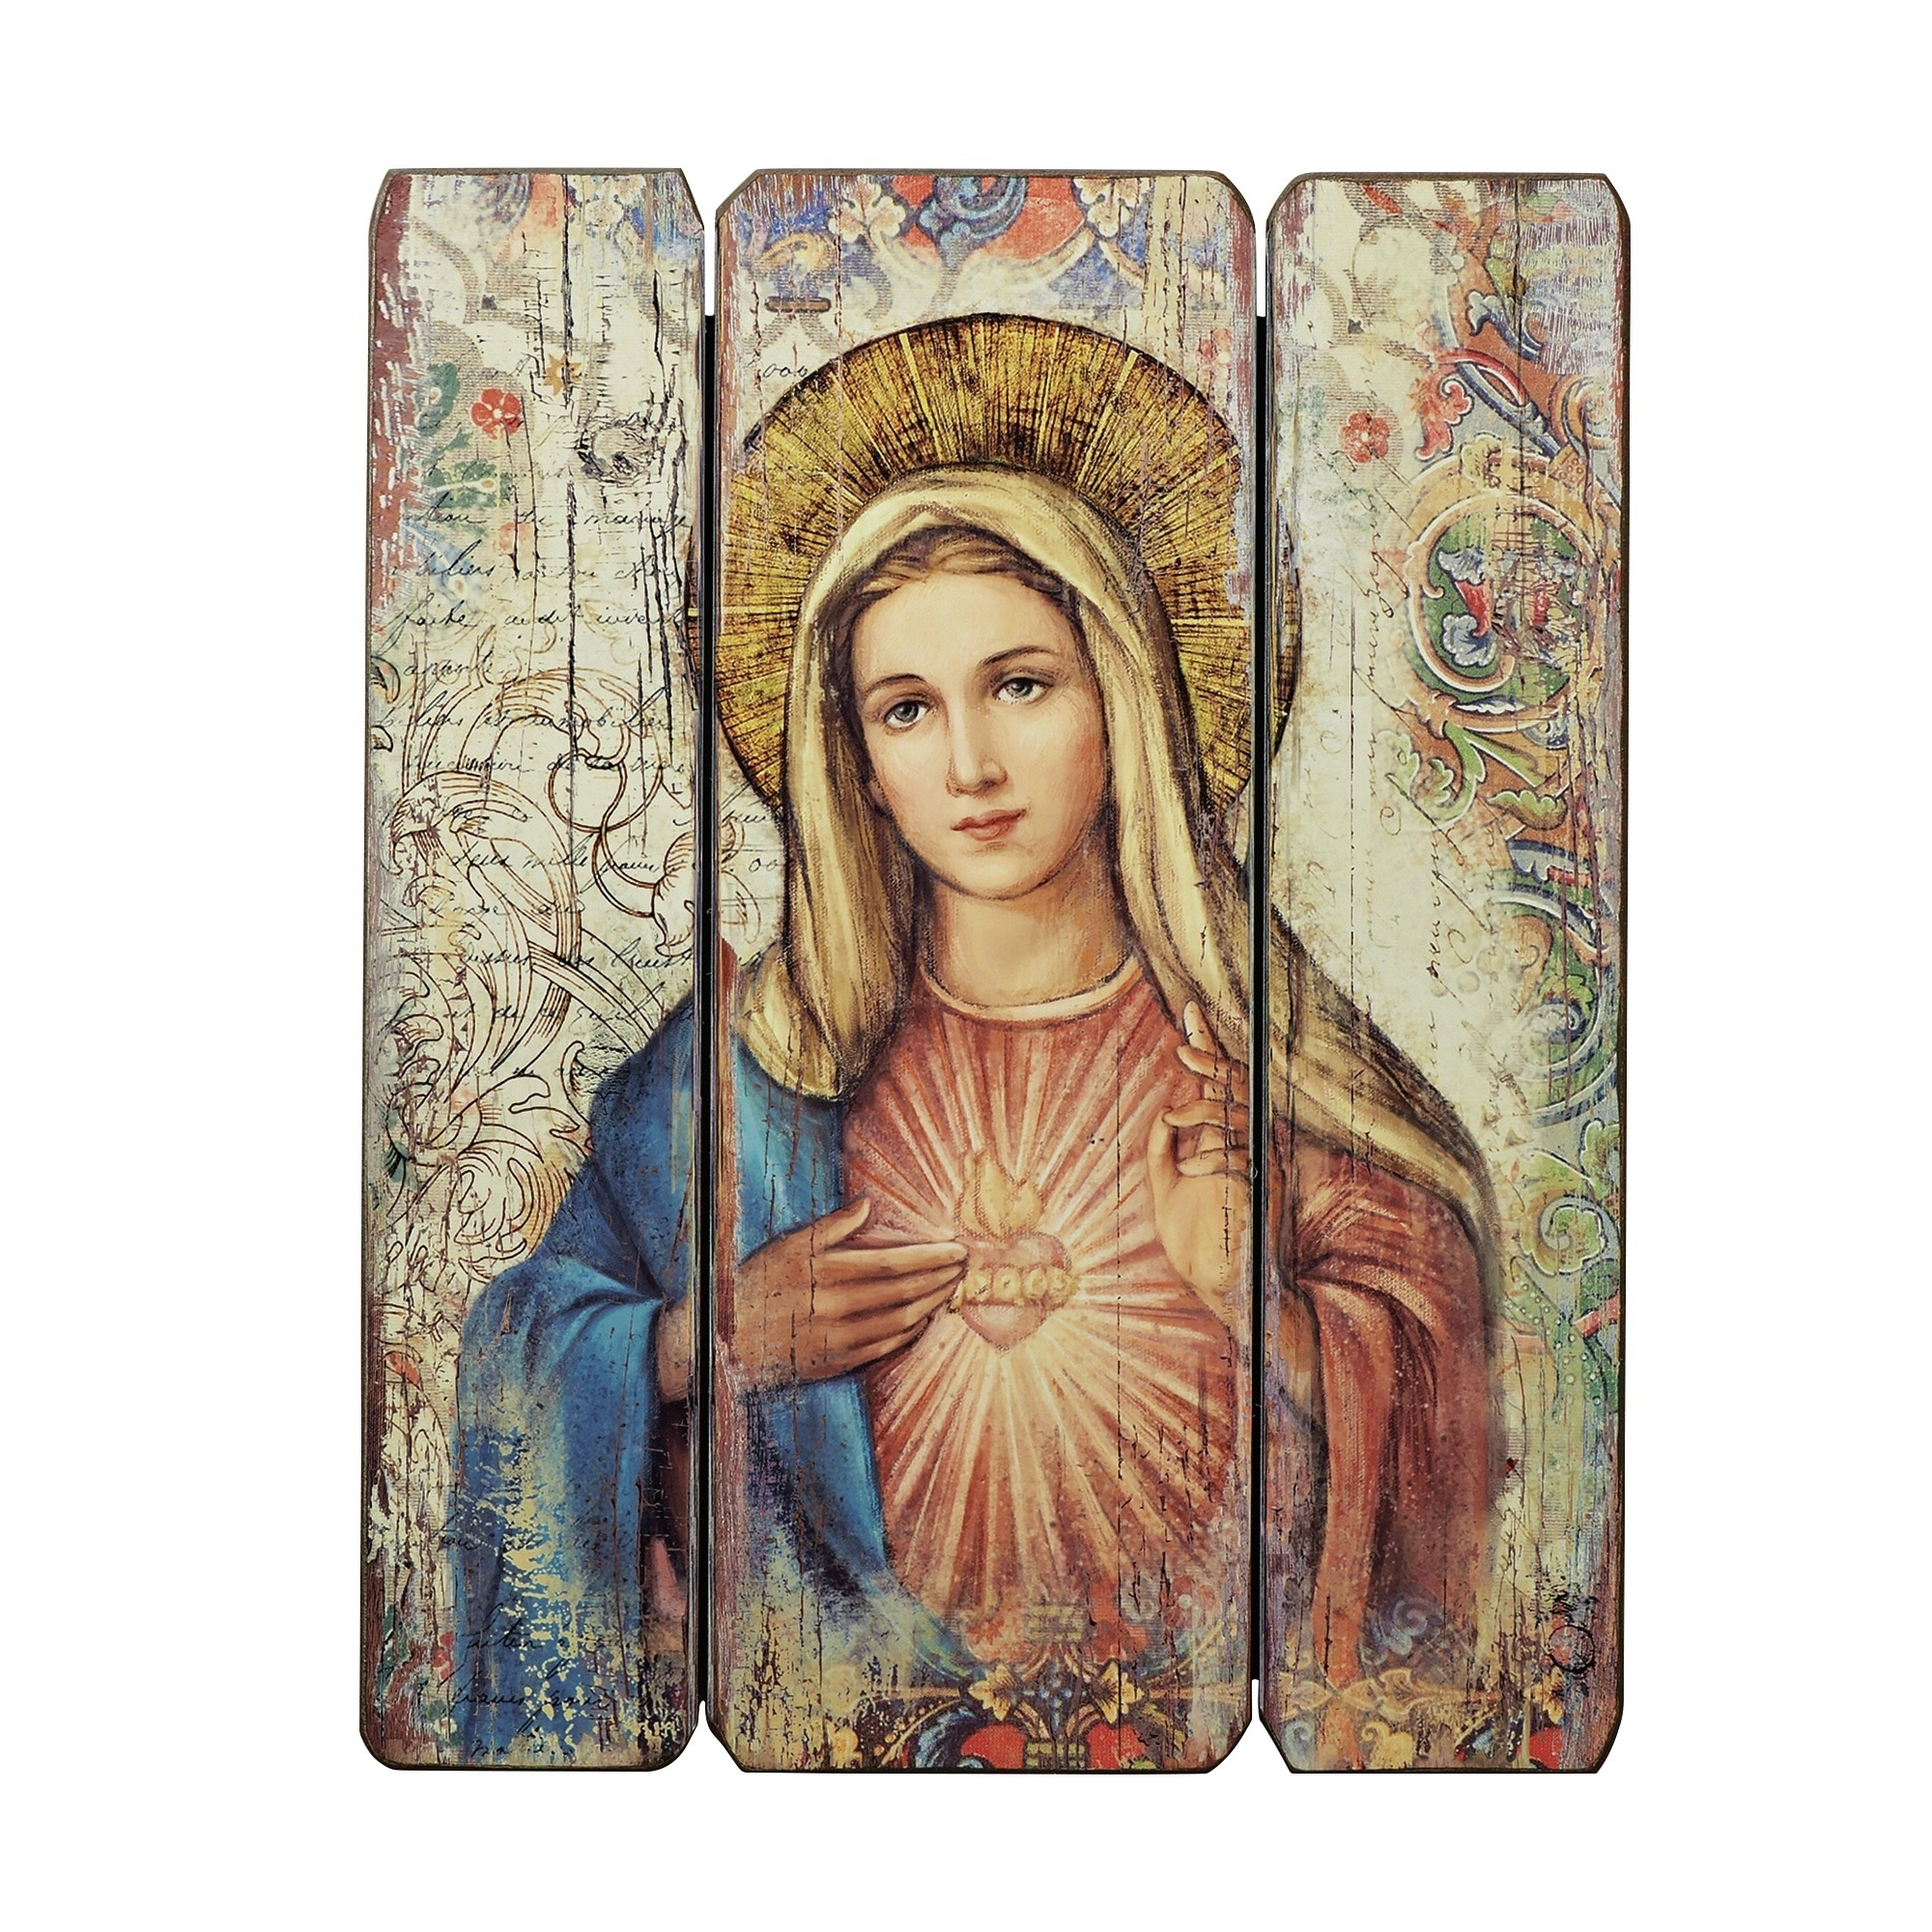 Virgin Mary Art: Our Lady Art Prints & More | The Catholic Company With Best And Newest Framed Asian Art Prints (View 12 of 15)